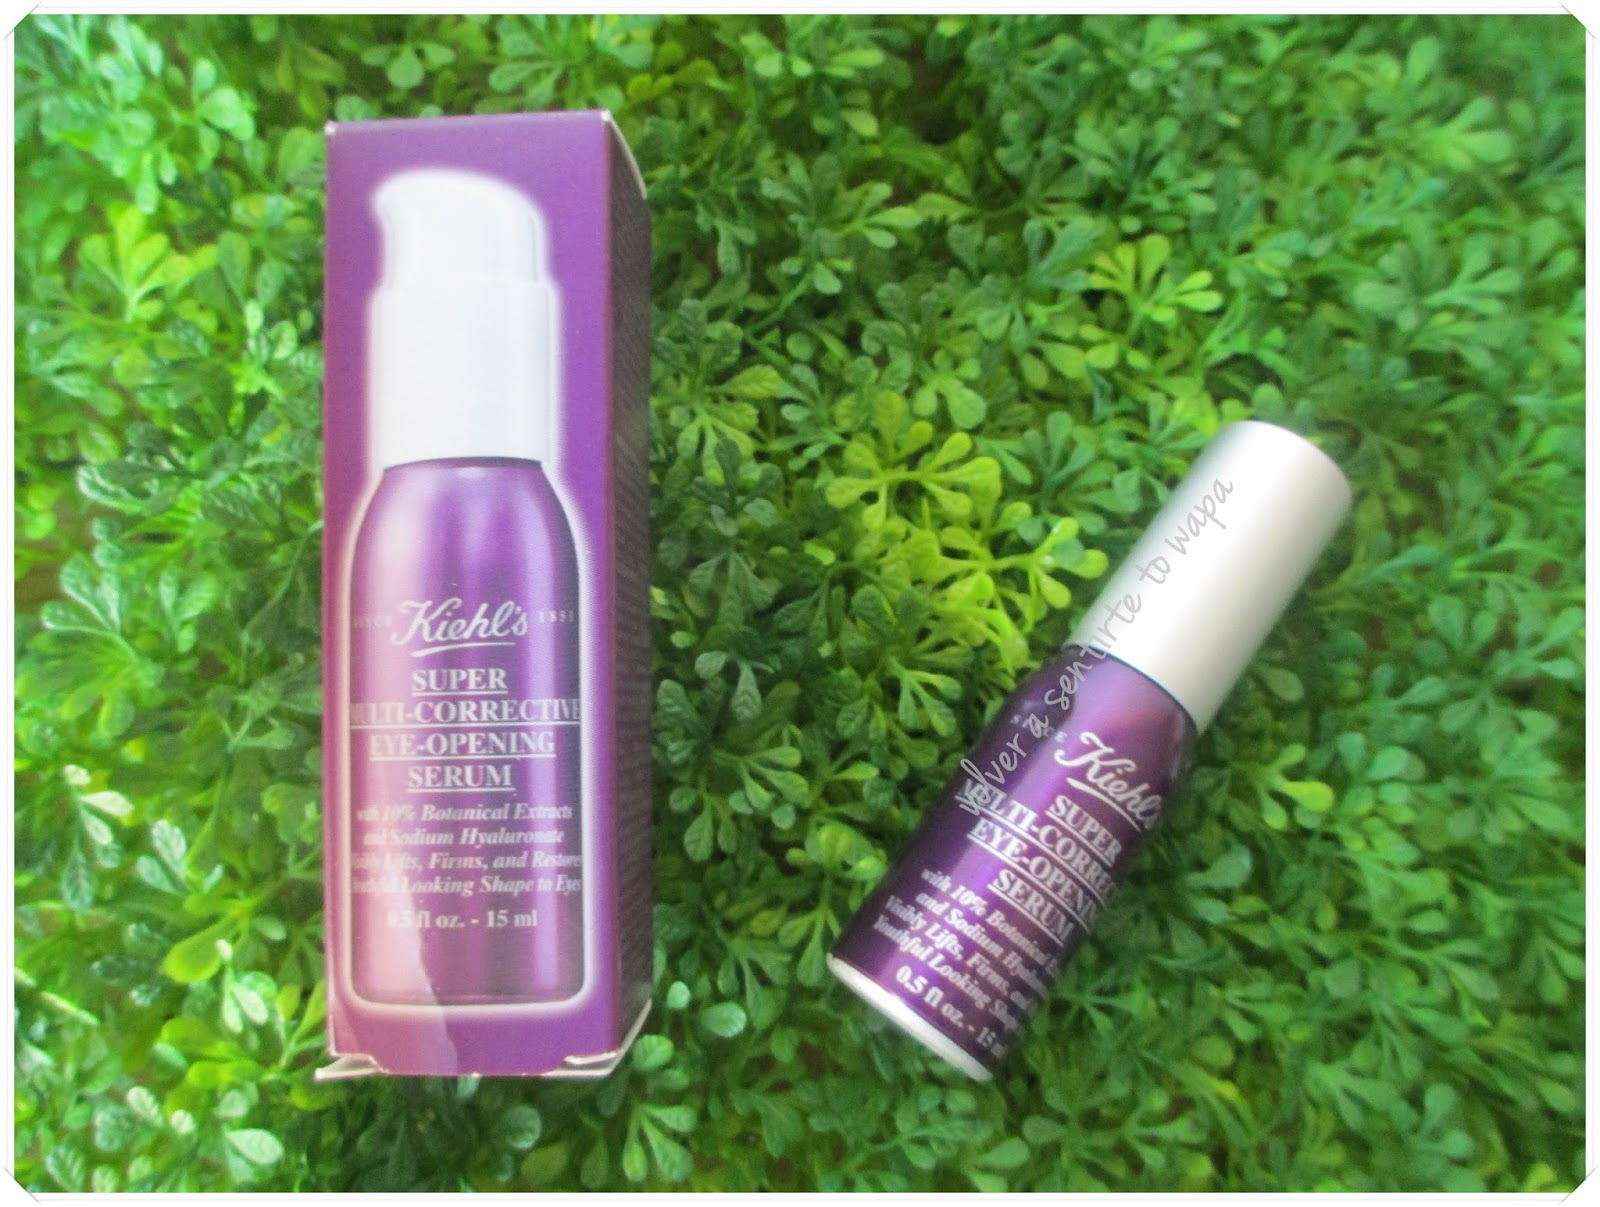 Super Multi-Corrective Eye Opening Serum de KIEHL'S {review} - Volver a Sentirte to Wapa